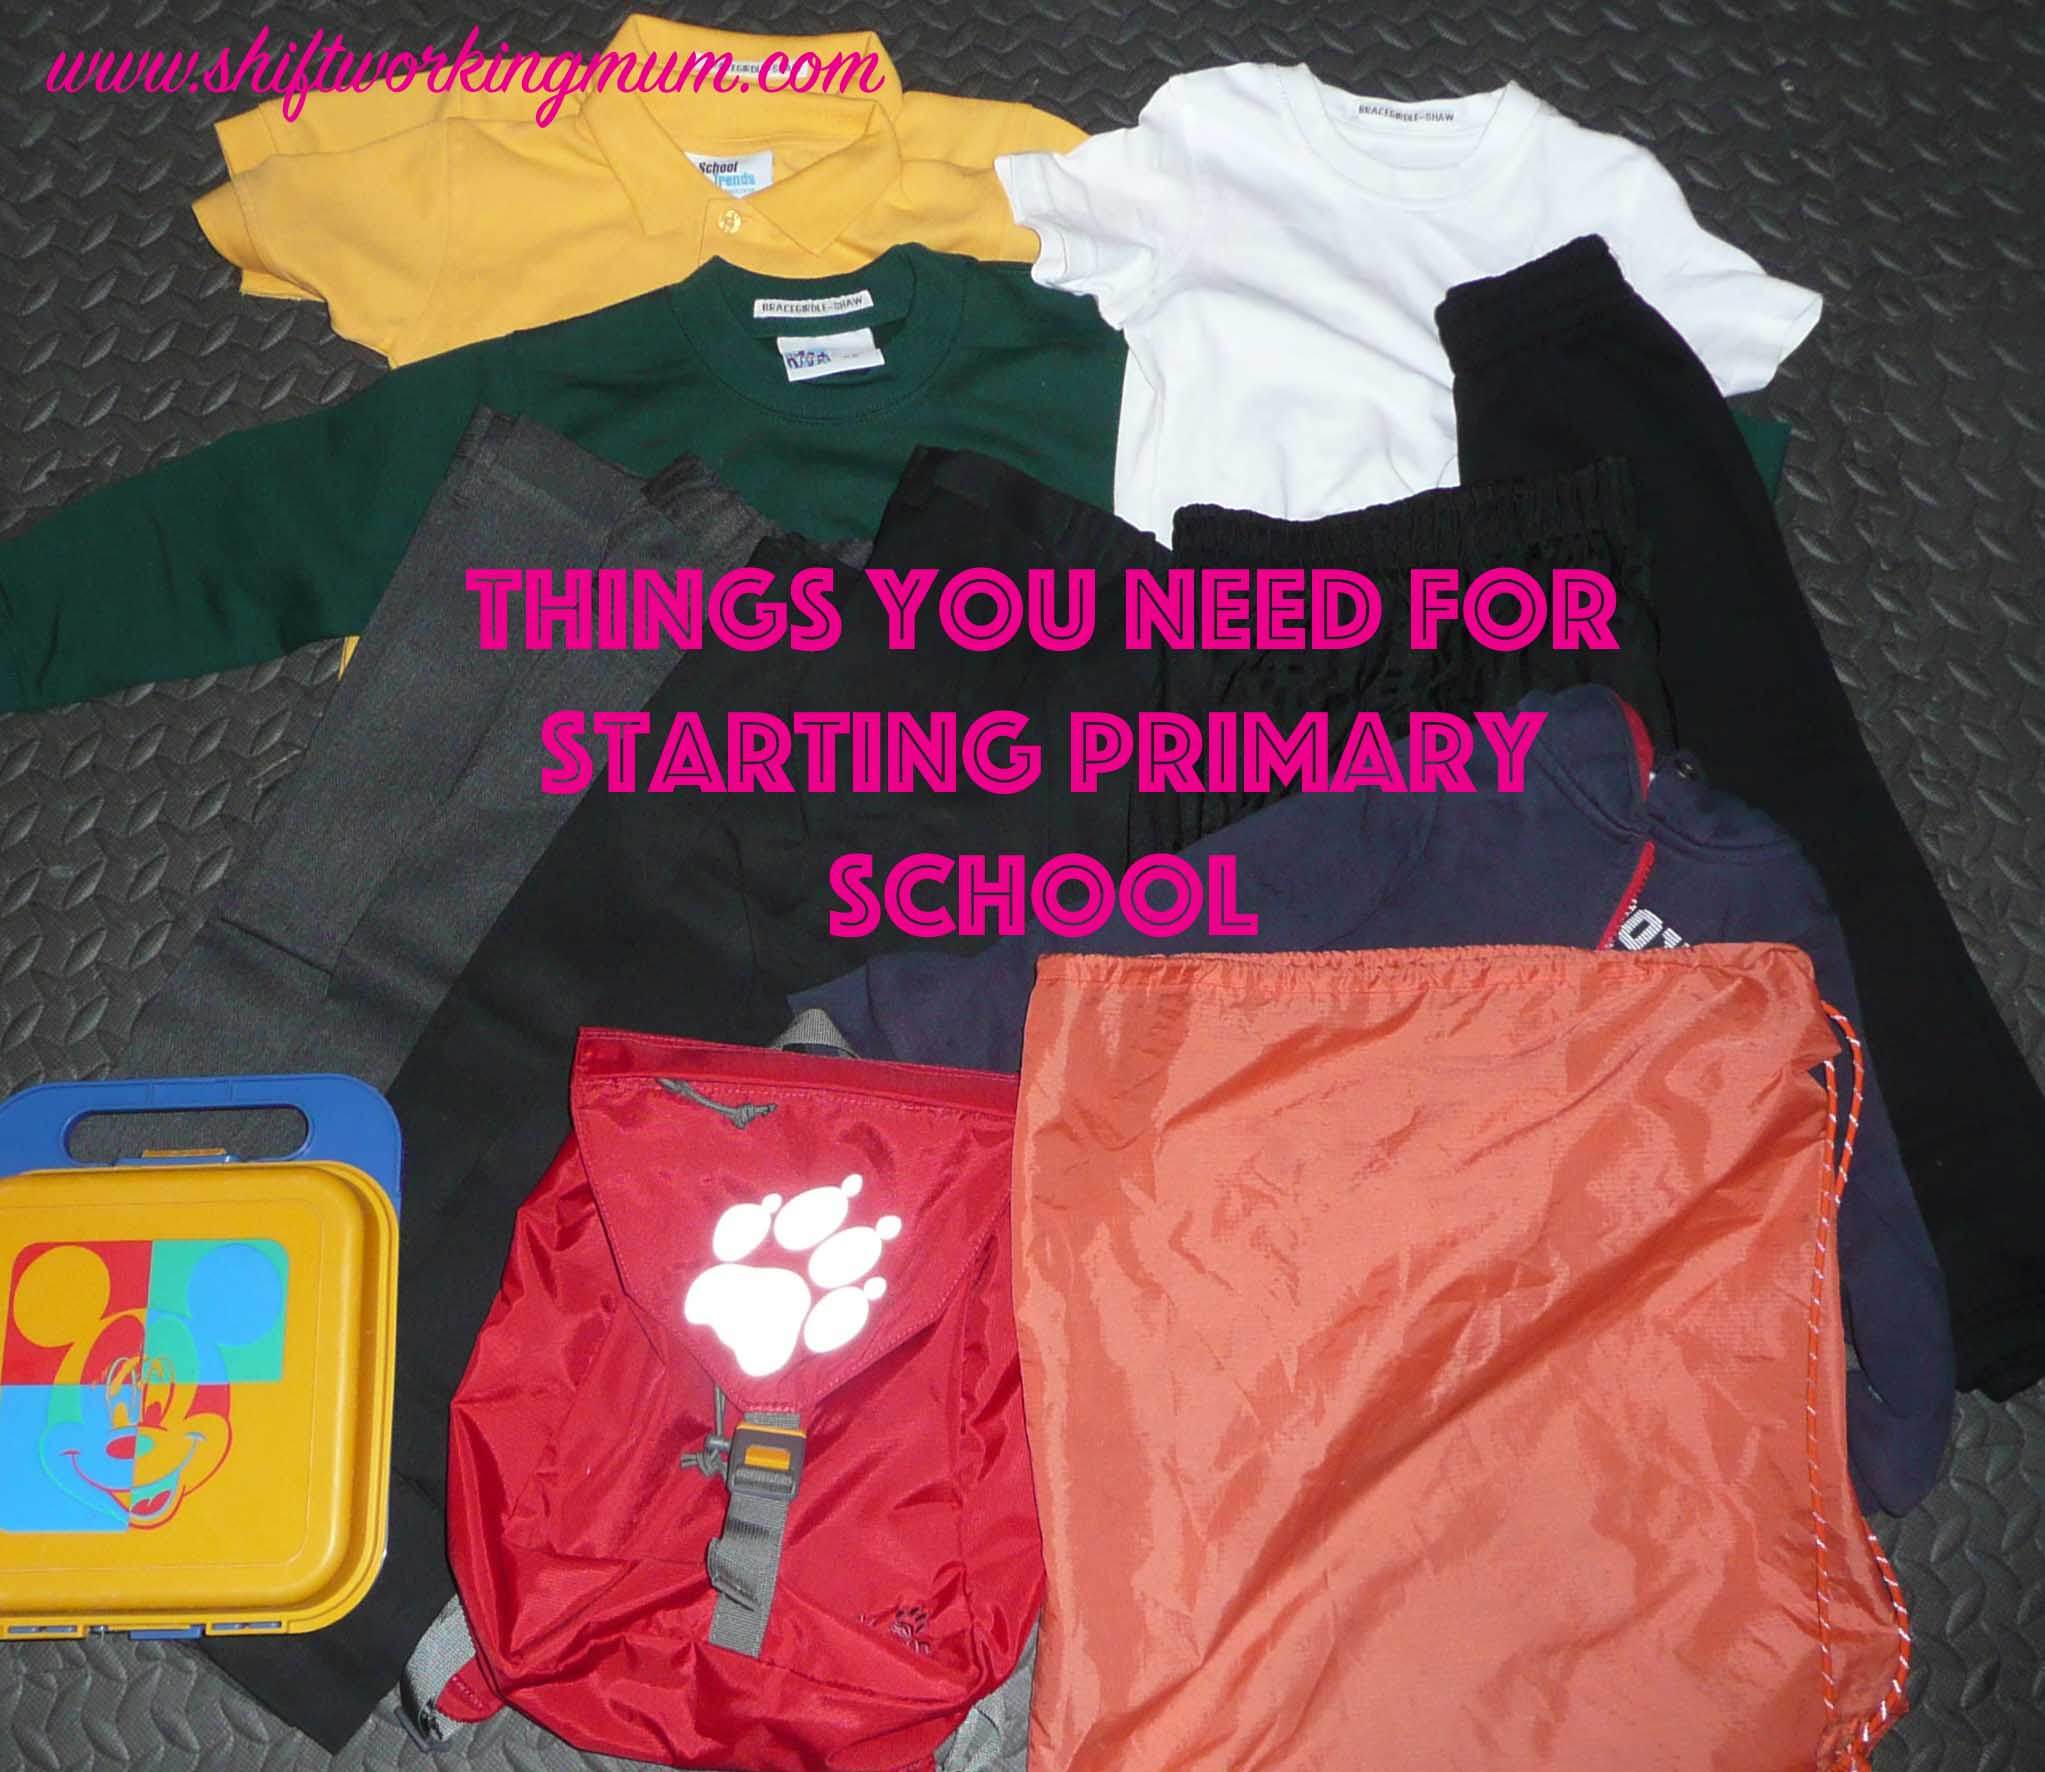 What you need to get ready for starting primary school